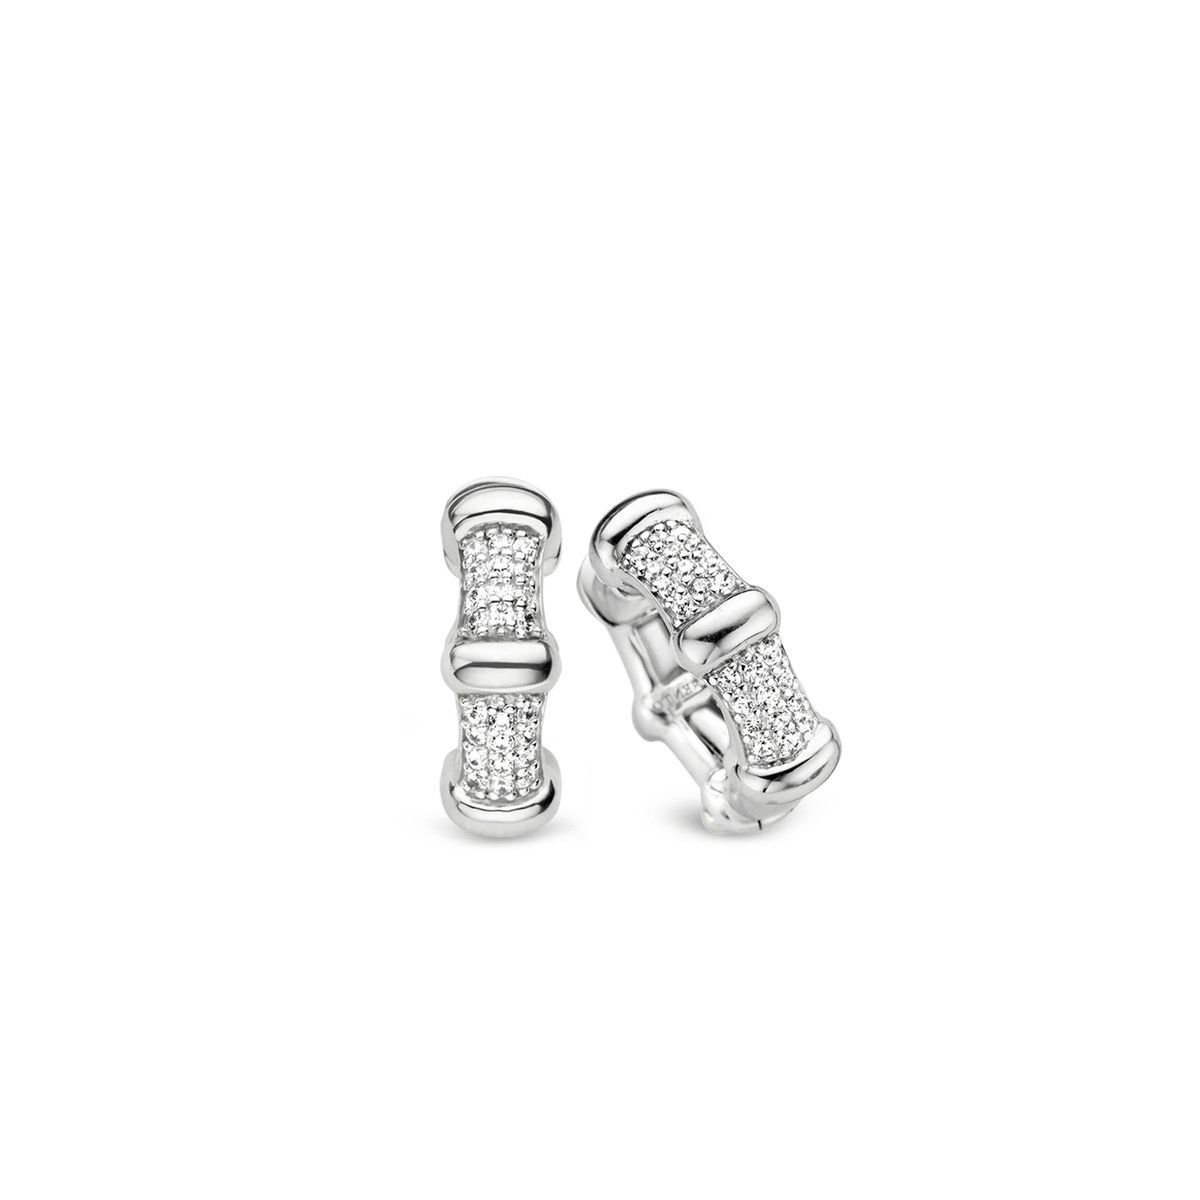 TI SENTO - Milano Earrings 7727ZI